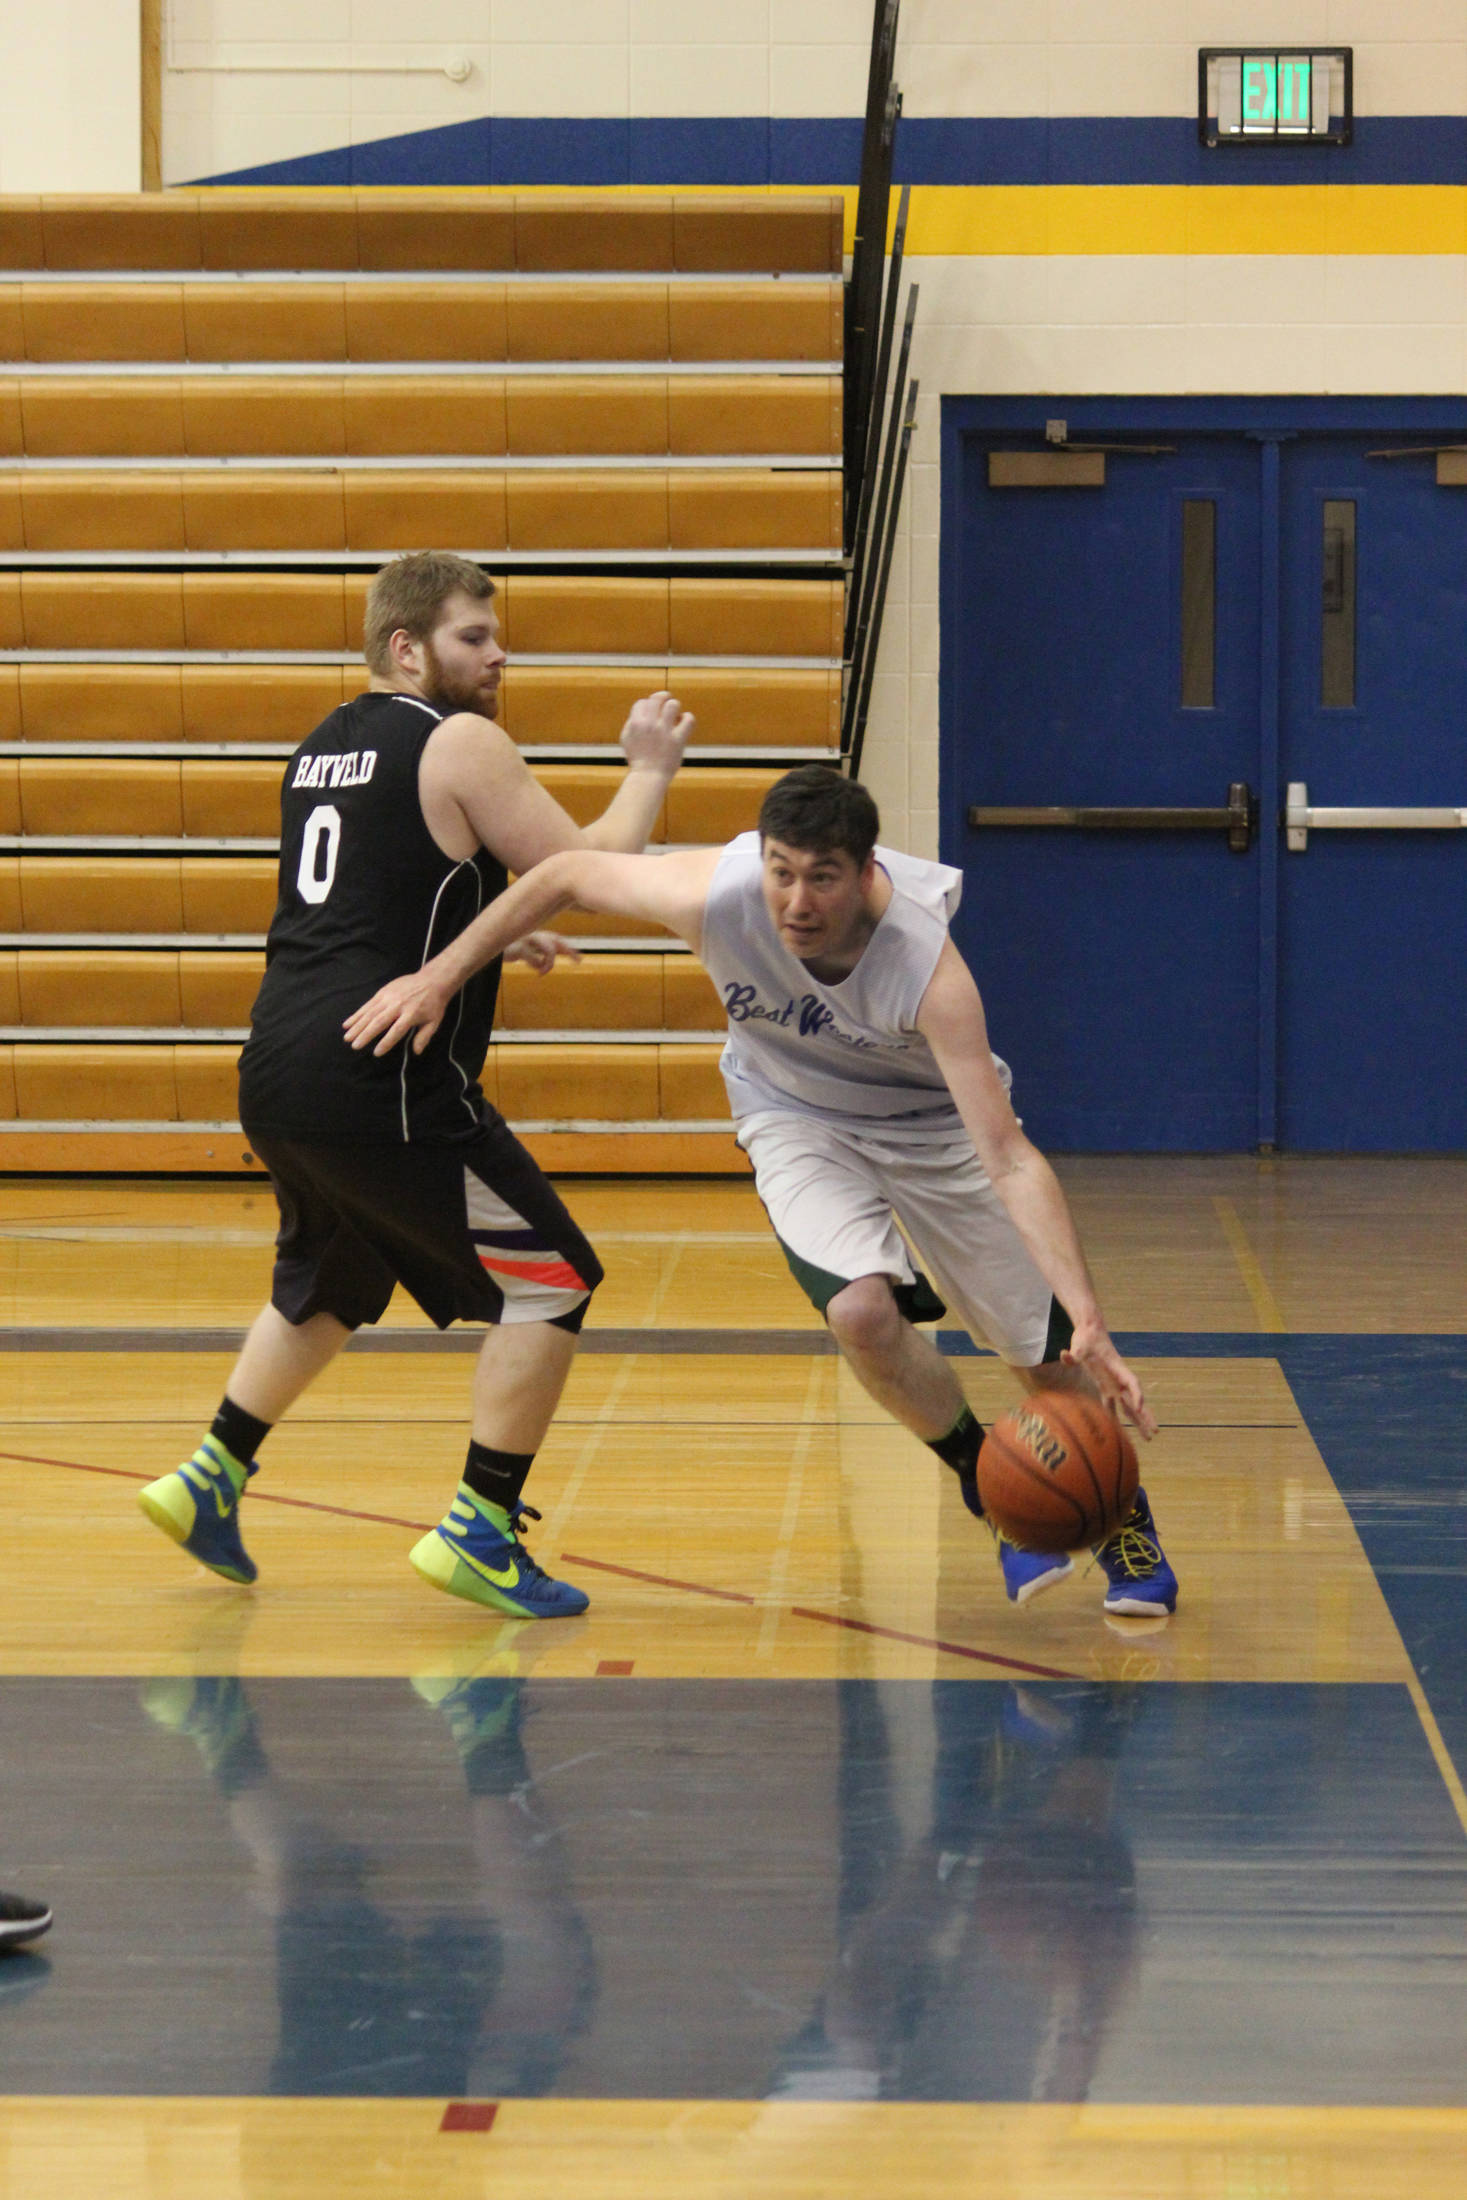 Josh Garvey (right) dribbles past Martin Molodih during the Homer city basketball league's championship game Monday, March 5, 2018 at Homer High School. (Photo by Megan Pacer/Homer News)